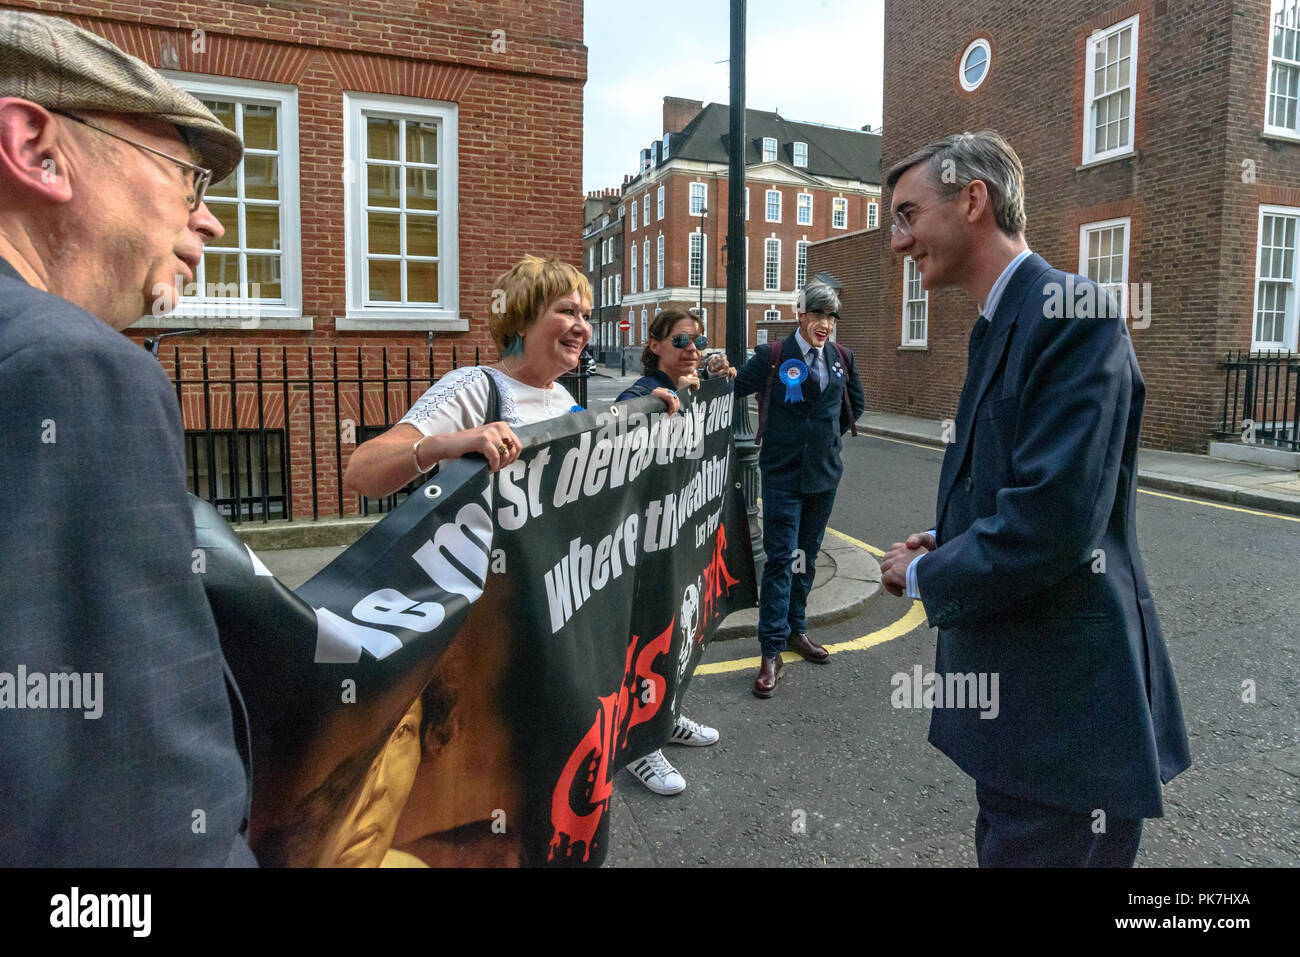 London, UK. 11th Sept 2018. Class War at the £5.6m Westminster town house of Jacob Rees-Mogg with street theatre calling for the release of Veronica Cook, his nanny who now looks after him and his six children. They say she ceased to exist as an independent human 50 years ago and has been subsumed into the Mogg family as if she was being confined in the tower of a gothic mansion. The protest starred former Class War Westminster candidate Adam Clifford as Jacob Rees-Mogg and Jane Nicholl as Nanny Crook, as well as a giant penis and offered escape to Veronica Cook, saying she is paid at below th Stock Photo